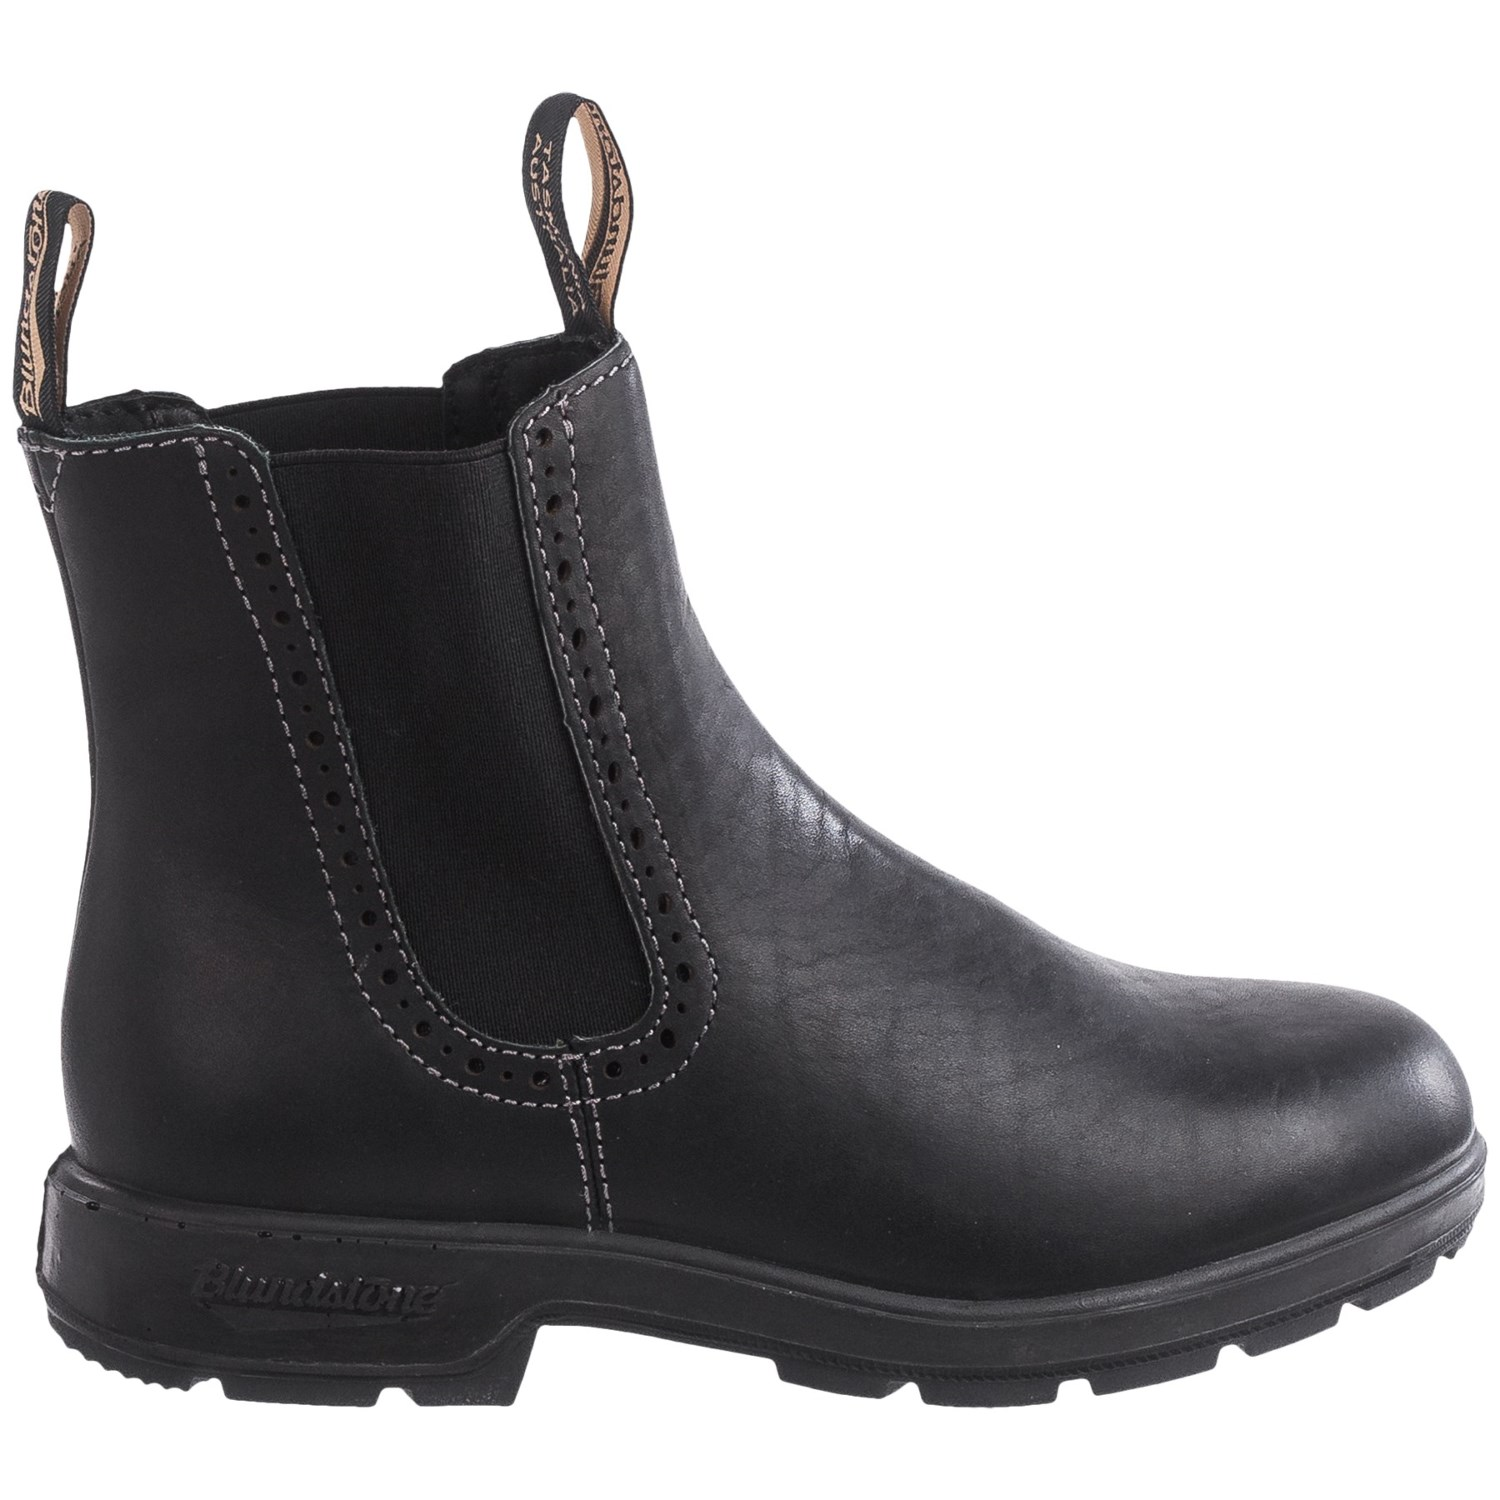 Blundstone 1448 Pull-On Boots (For Women)